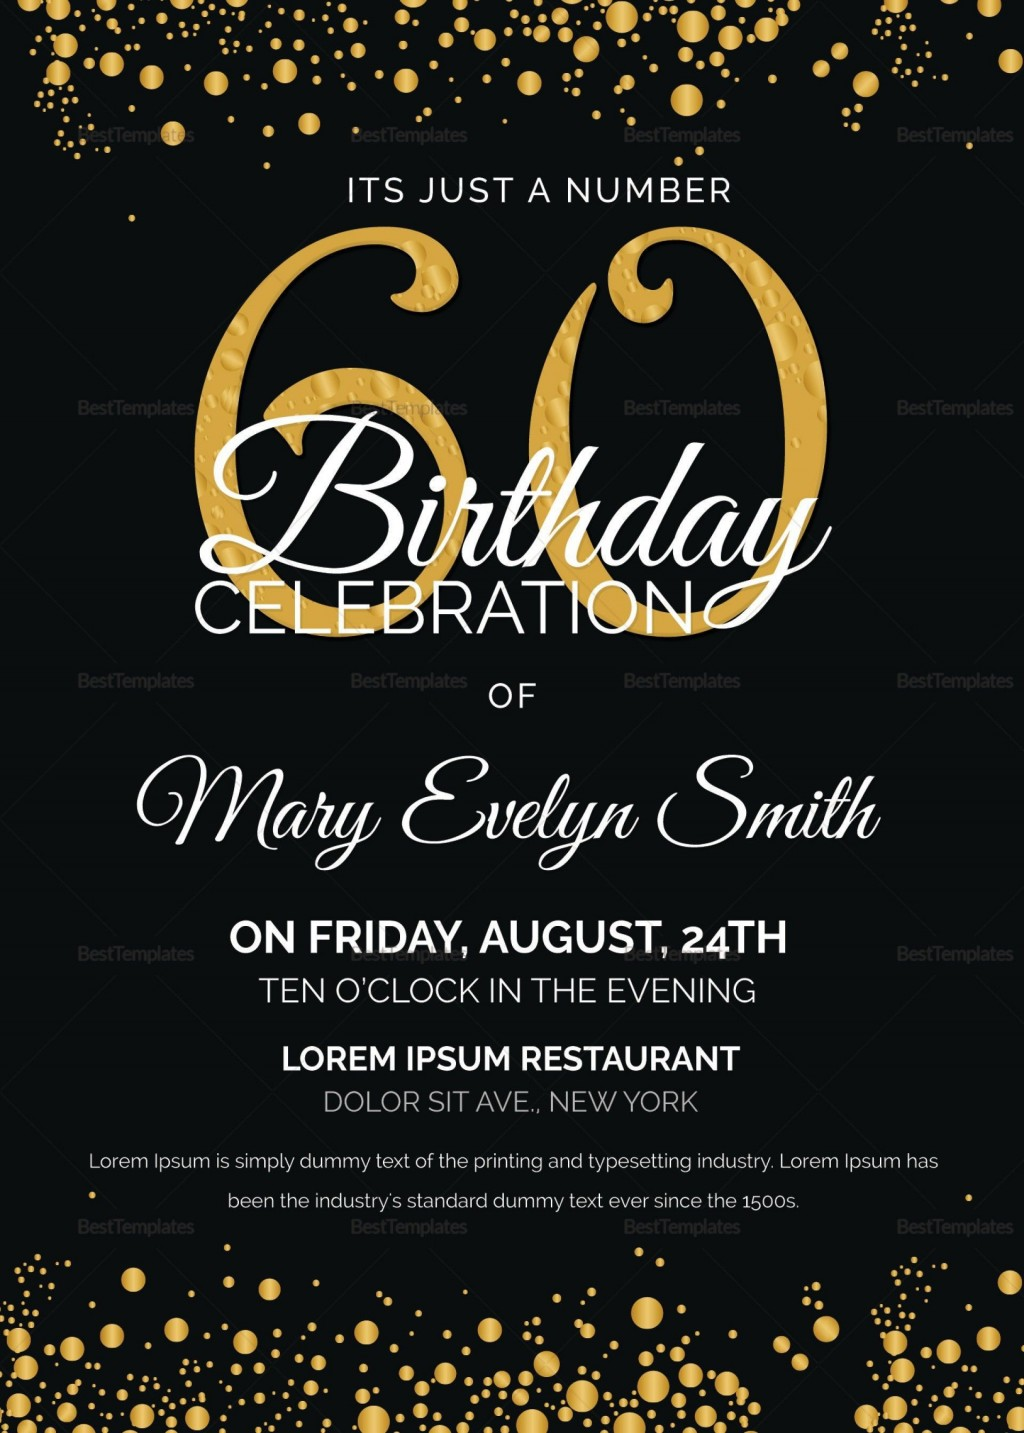 006 Awesome 60 Birthday Invite Template Highest Clarity  Templates 60th Printable FreeLarge